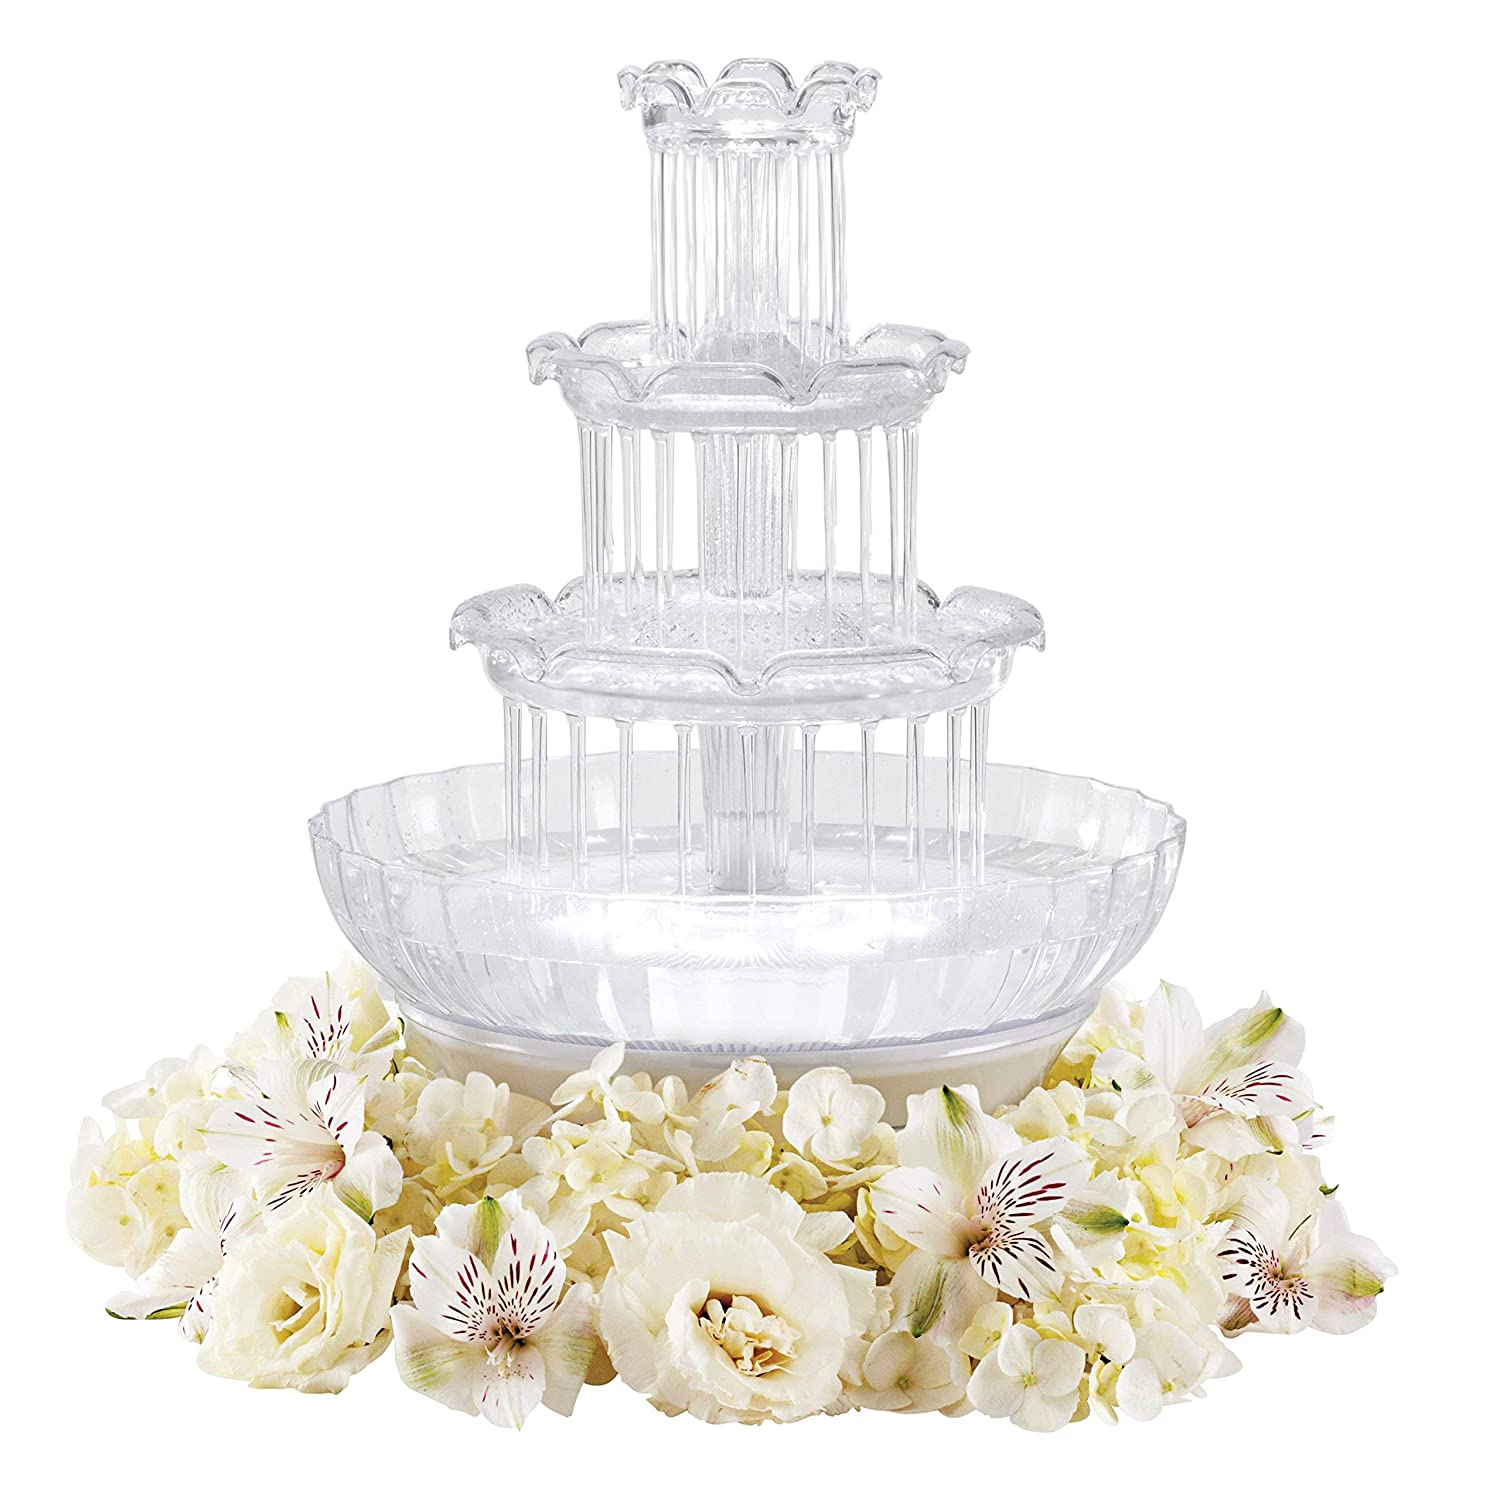 Holidays and any Celebration where Friends and Family Gather Togethers Renewed Birthdays Wilton Fanci Flow Tabletop Fountain for Weddings Clear